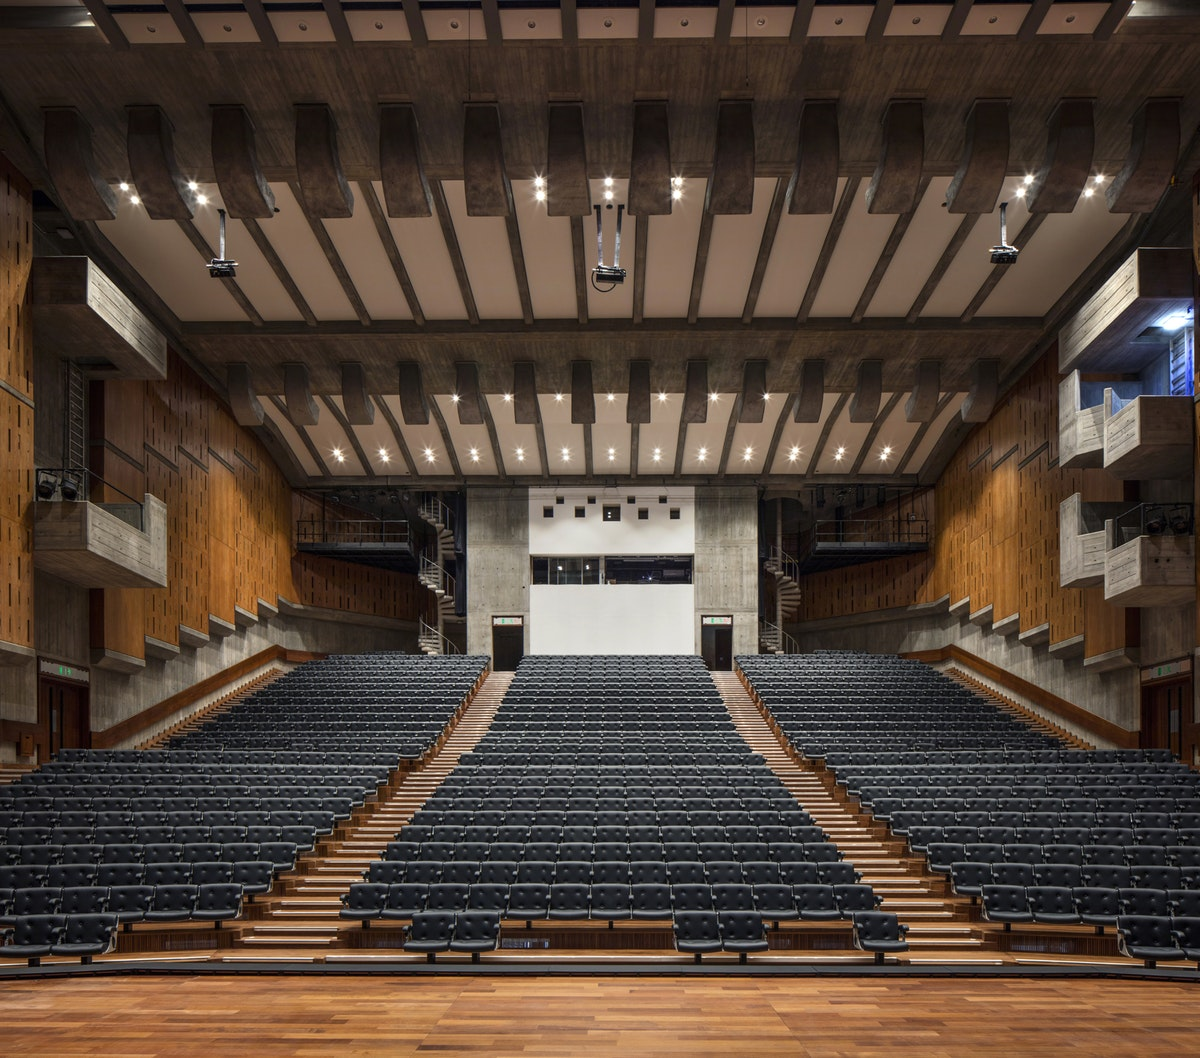 The Southbank Centre has some whopping venue news